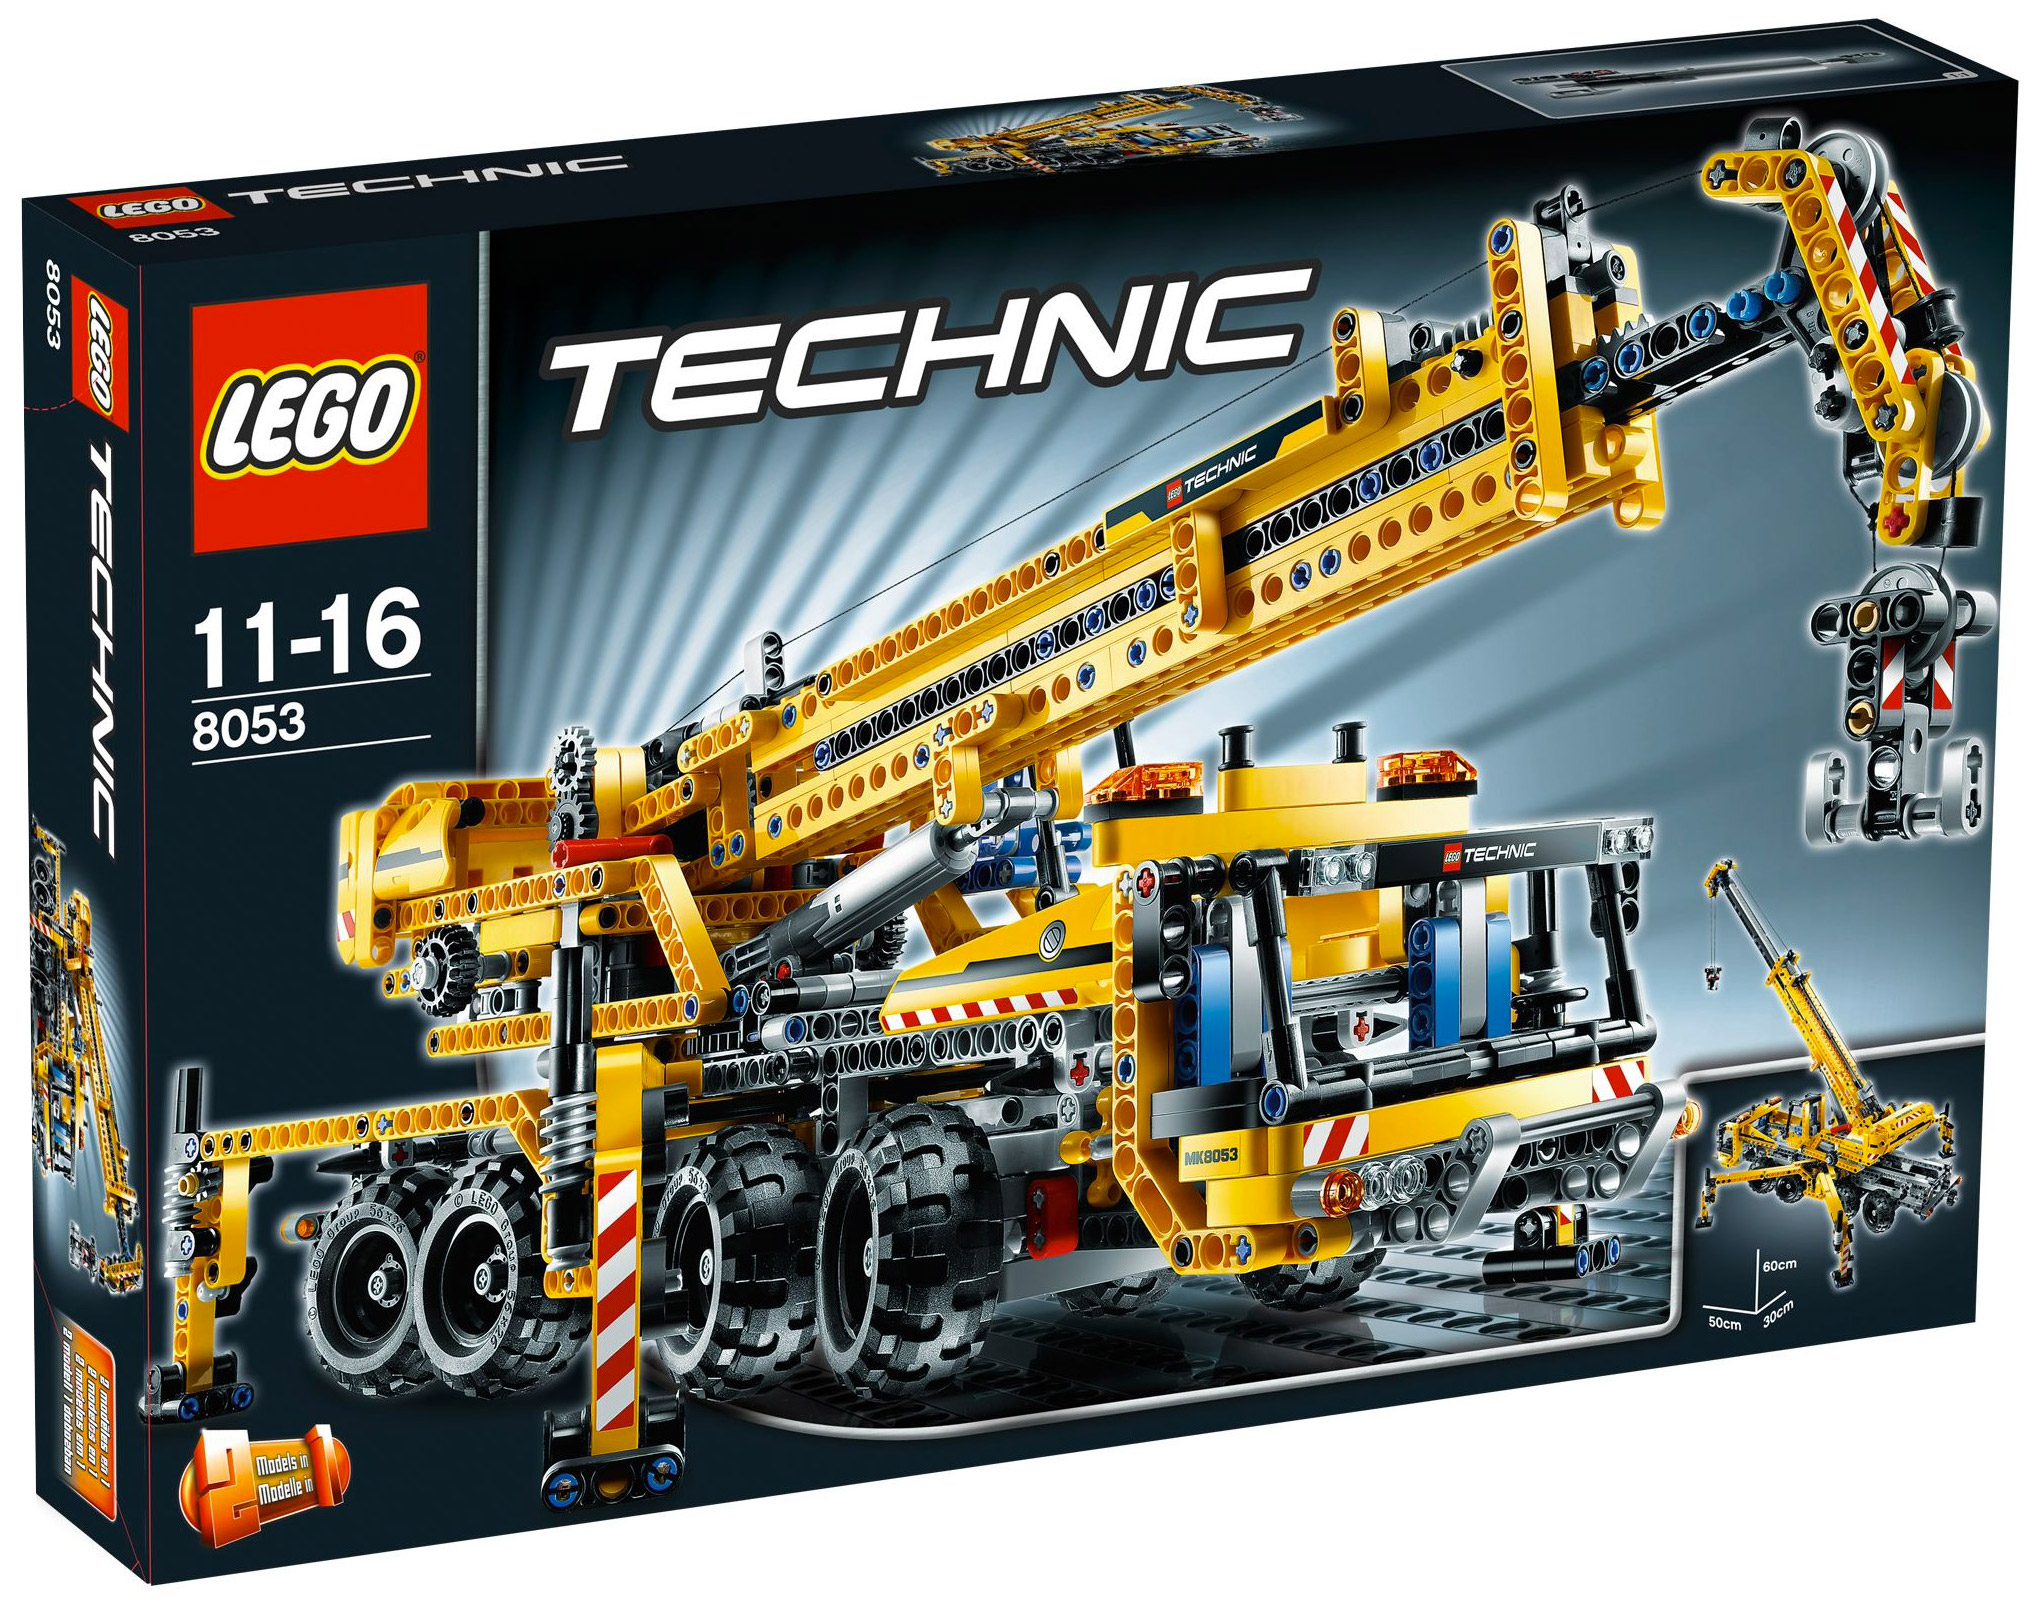 lego technic 8053 pas cher la grue mobile. Black Bedroom Furniture Sets. Home Design Ideas